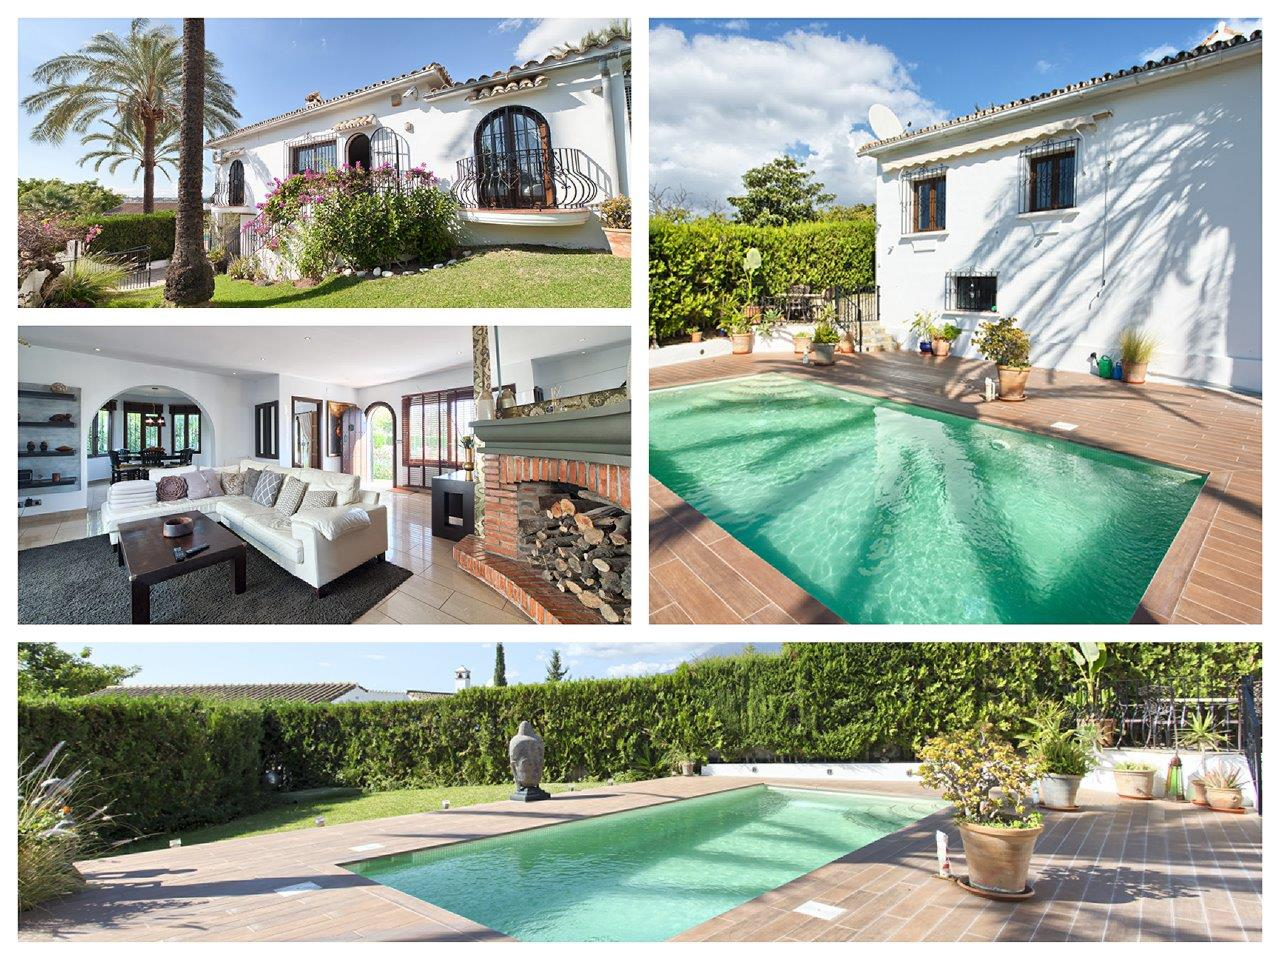 Detached villa in Las Lomas Estepona for sale